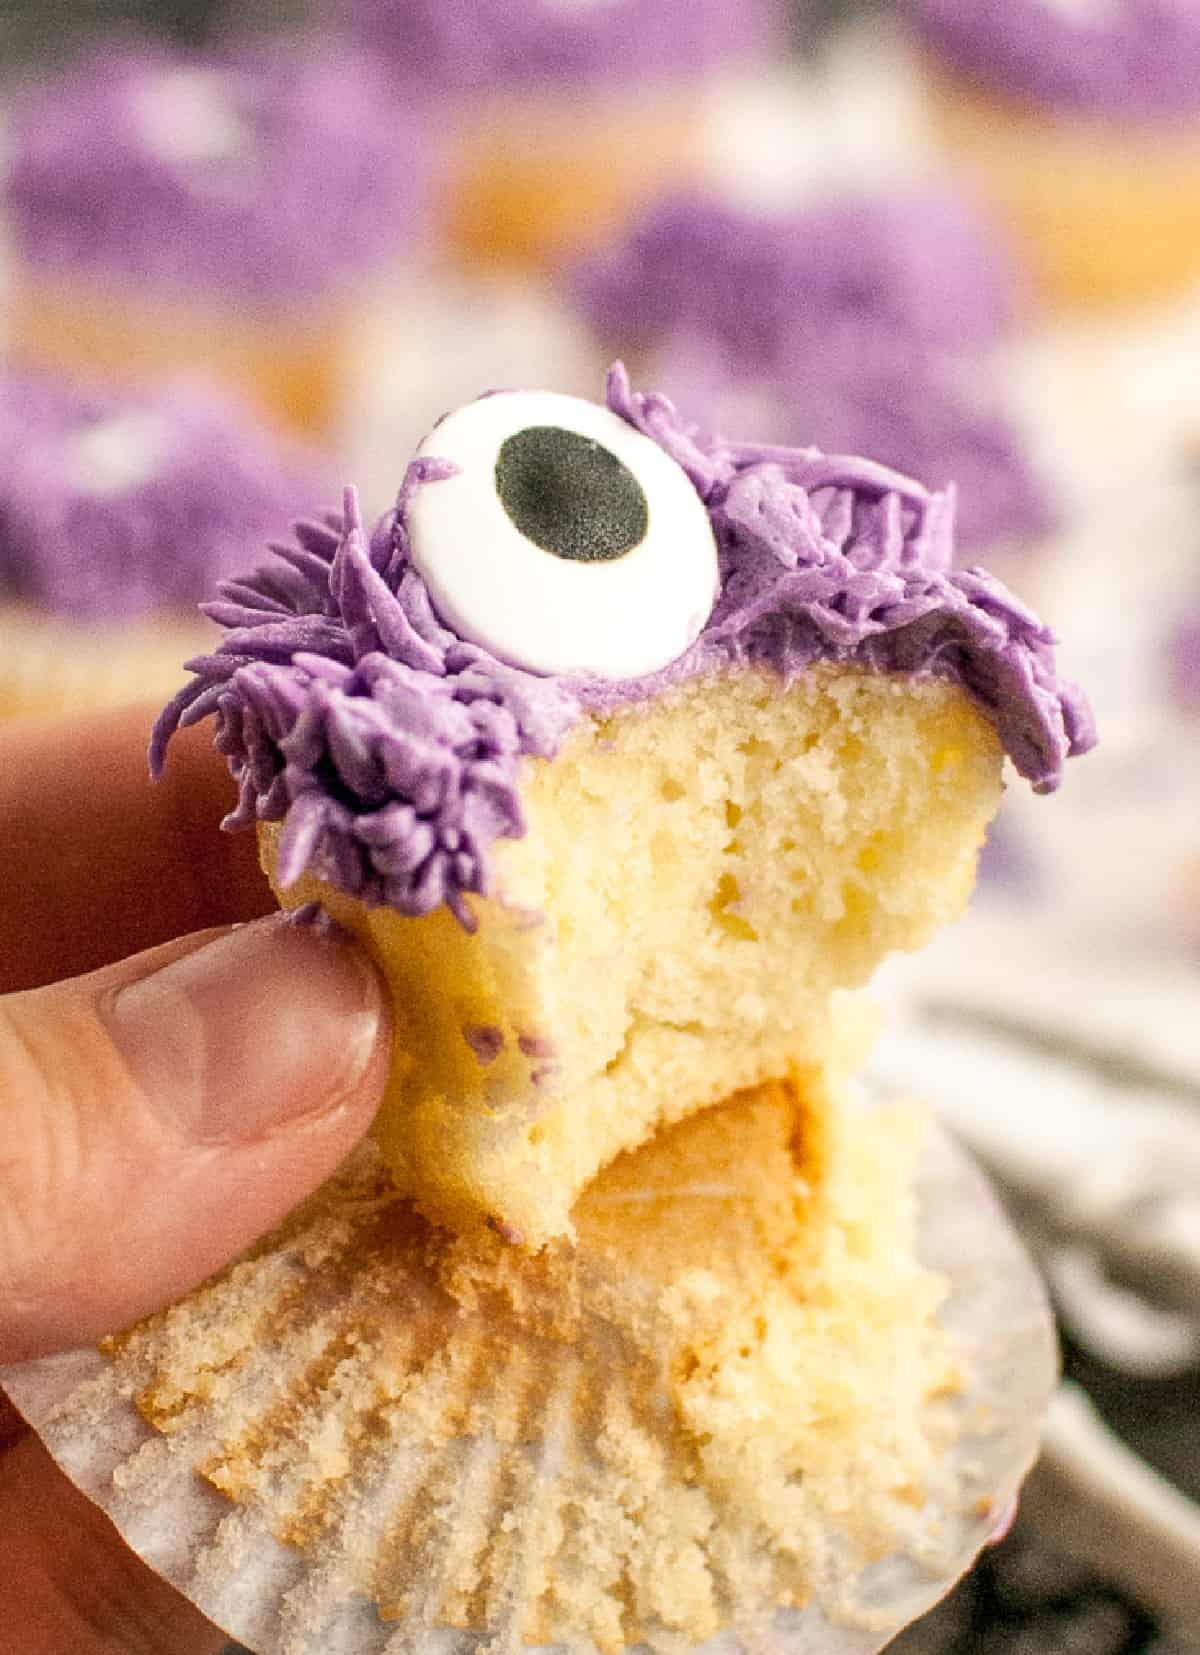 A cmonster cupcake being held with a bite out of it.